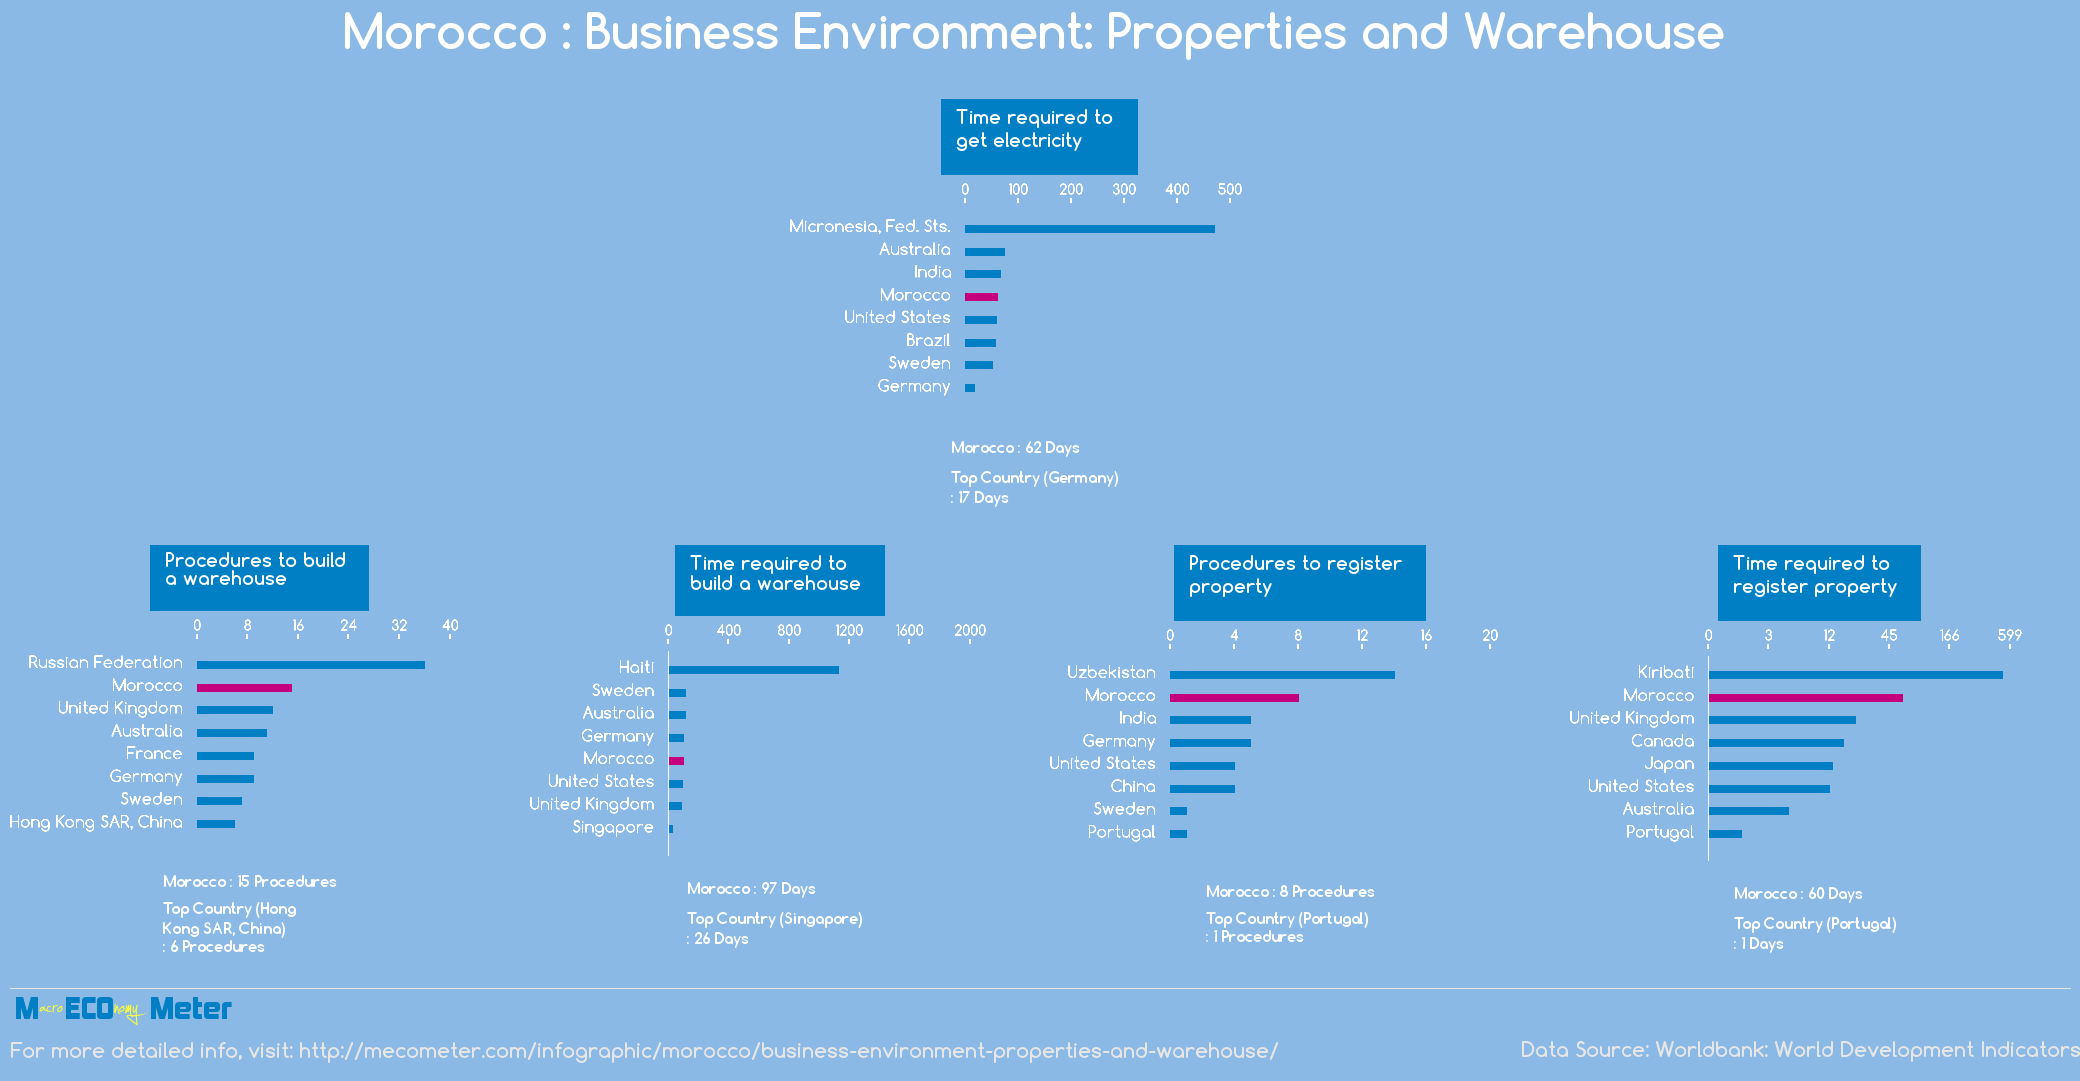 Morocco : Business Environment: Properties and Warehouse